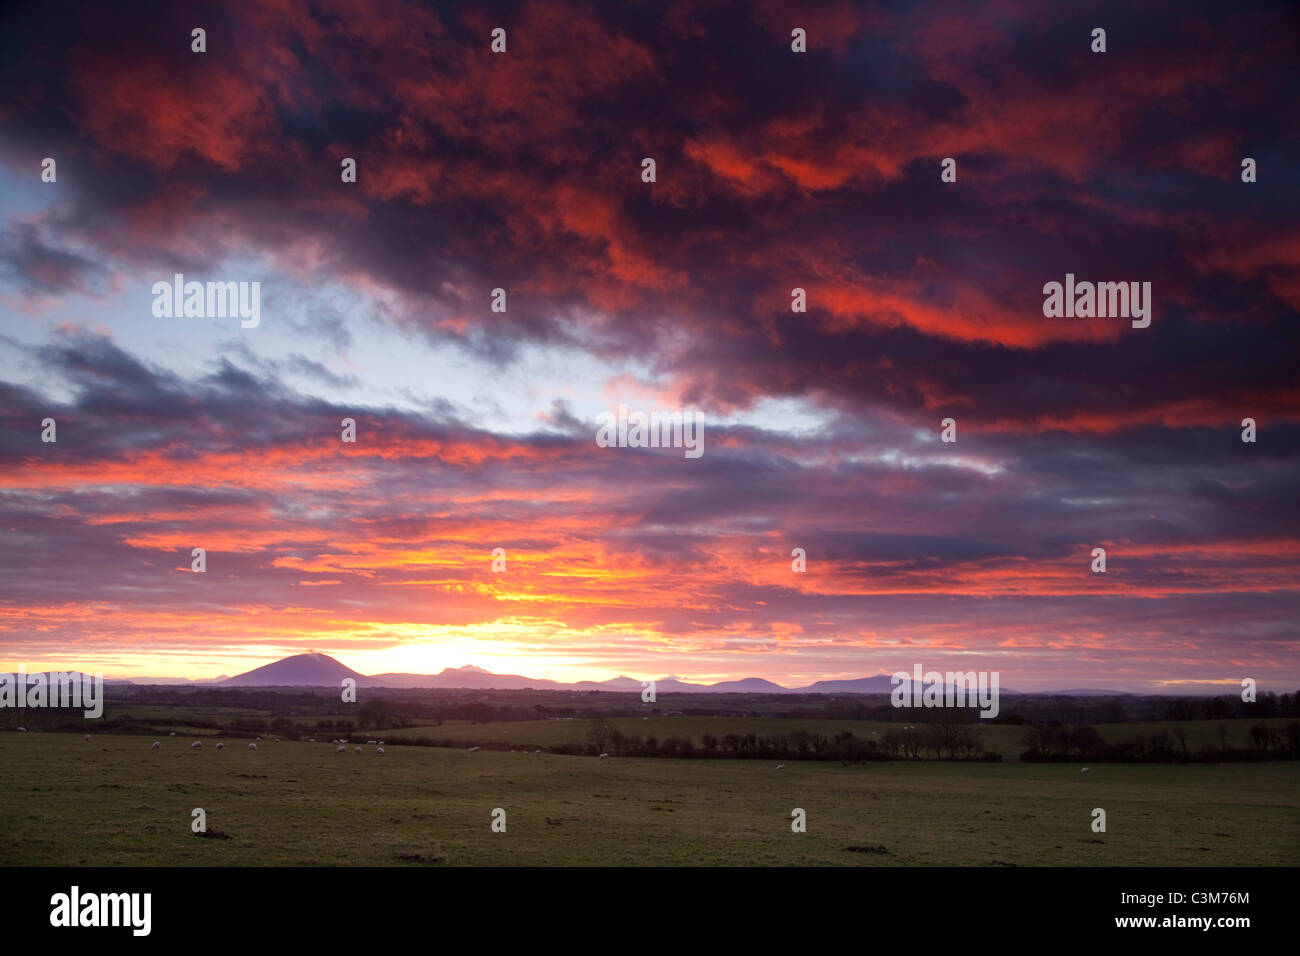 Sunset over the Nephin Beg Mountains, County Sligo, Ireland. - Stock Image